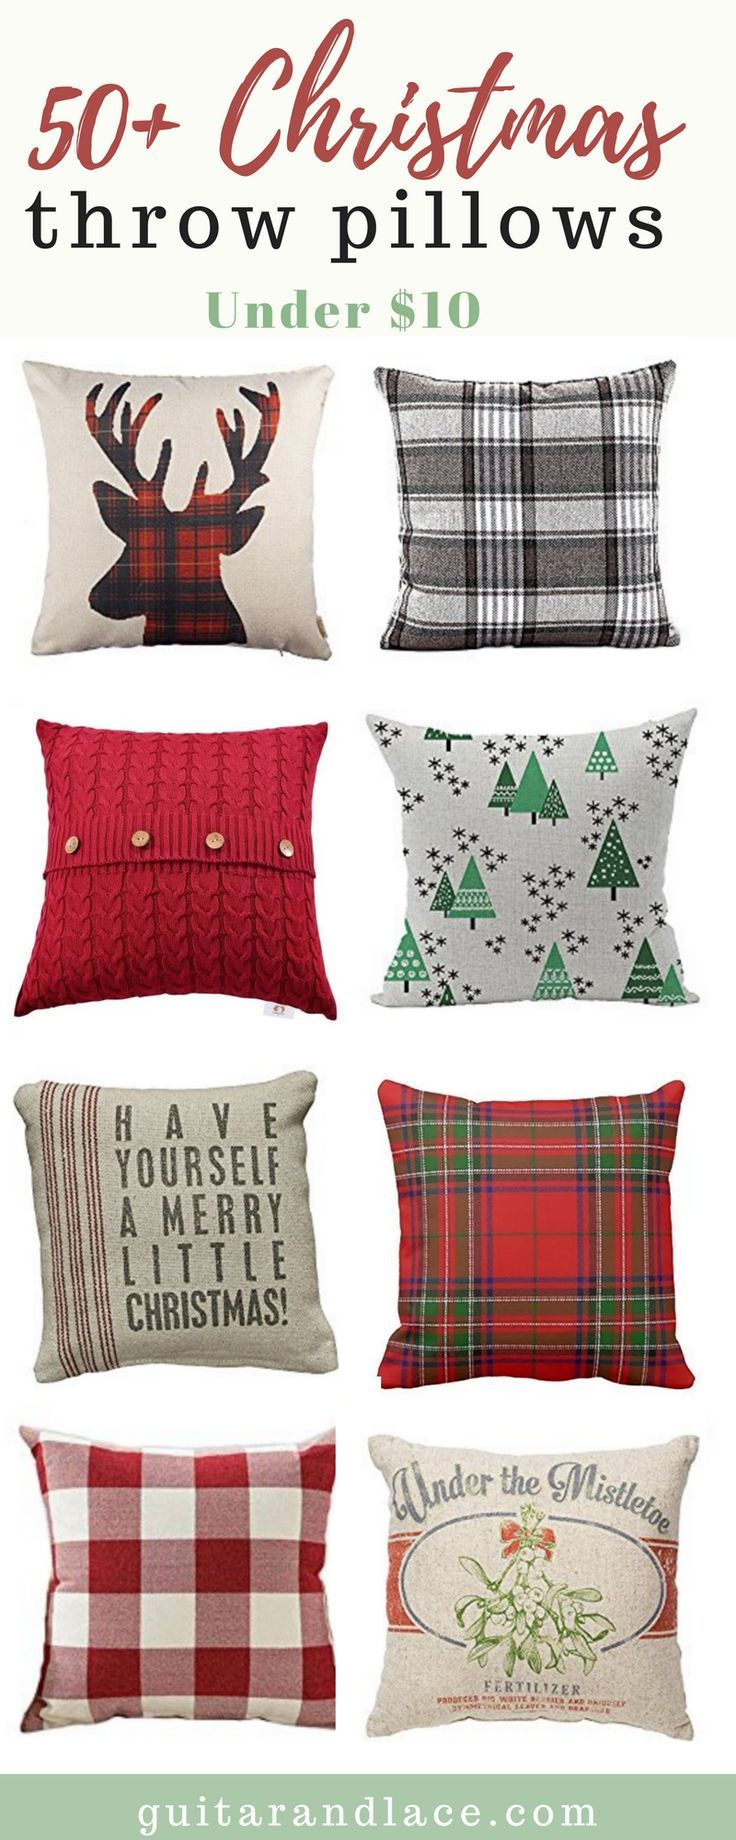 Cheap Decorative Pillows Under $10 Glamorous Christmas Throw Pillow Shopping Guide  Hygge Christmas Farmhouse Design Ideas